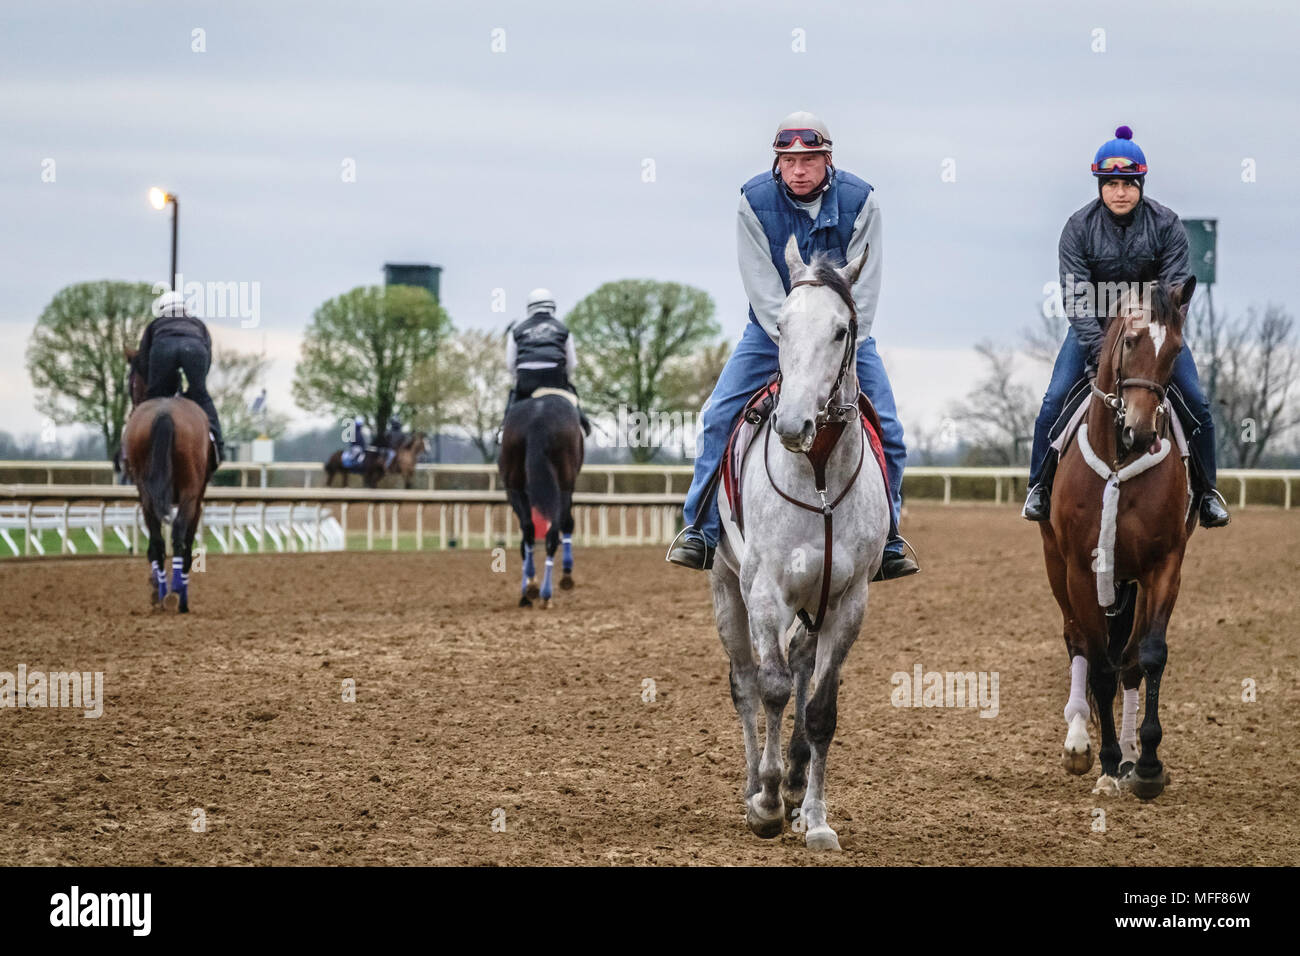 LEXINGTON, KENTUCKY/USA - APRIL 19, 2018: Exercise riders on thoroughbreds during a workout early on a chilly morning at Keeneland Race Course. - Stock Image